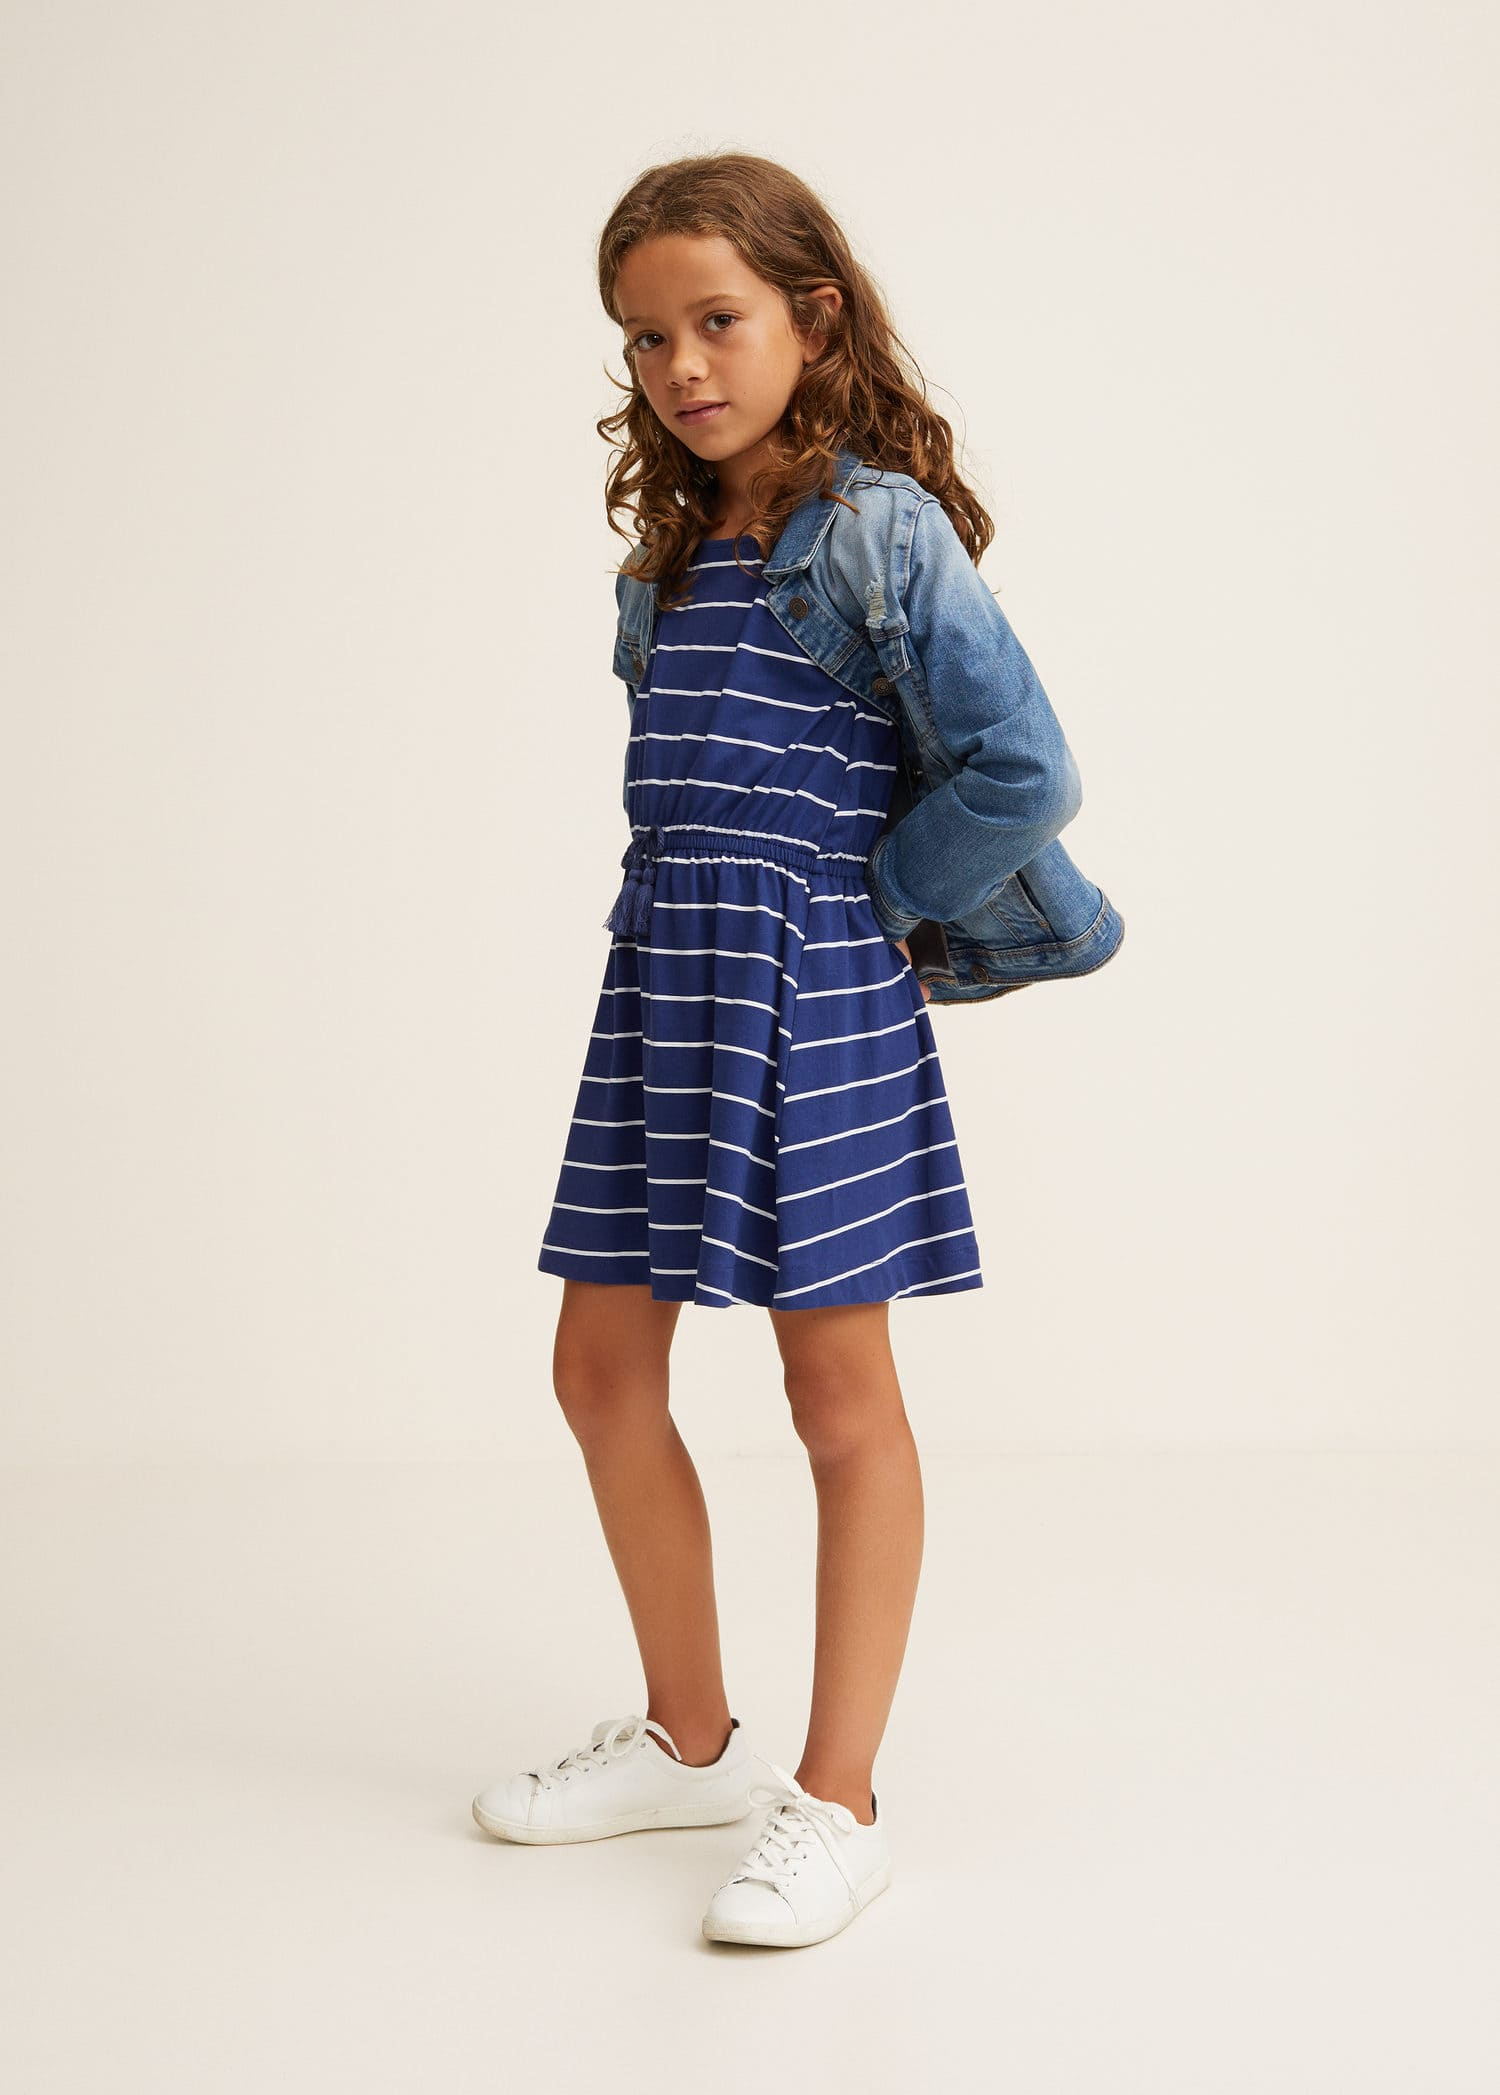 Robes pour Fille 2019   MANGO Kids France 6bfef5fa94c8